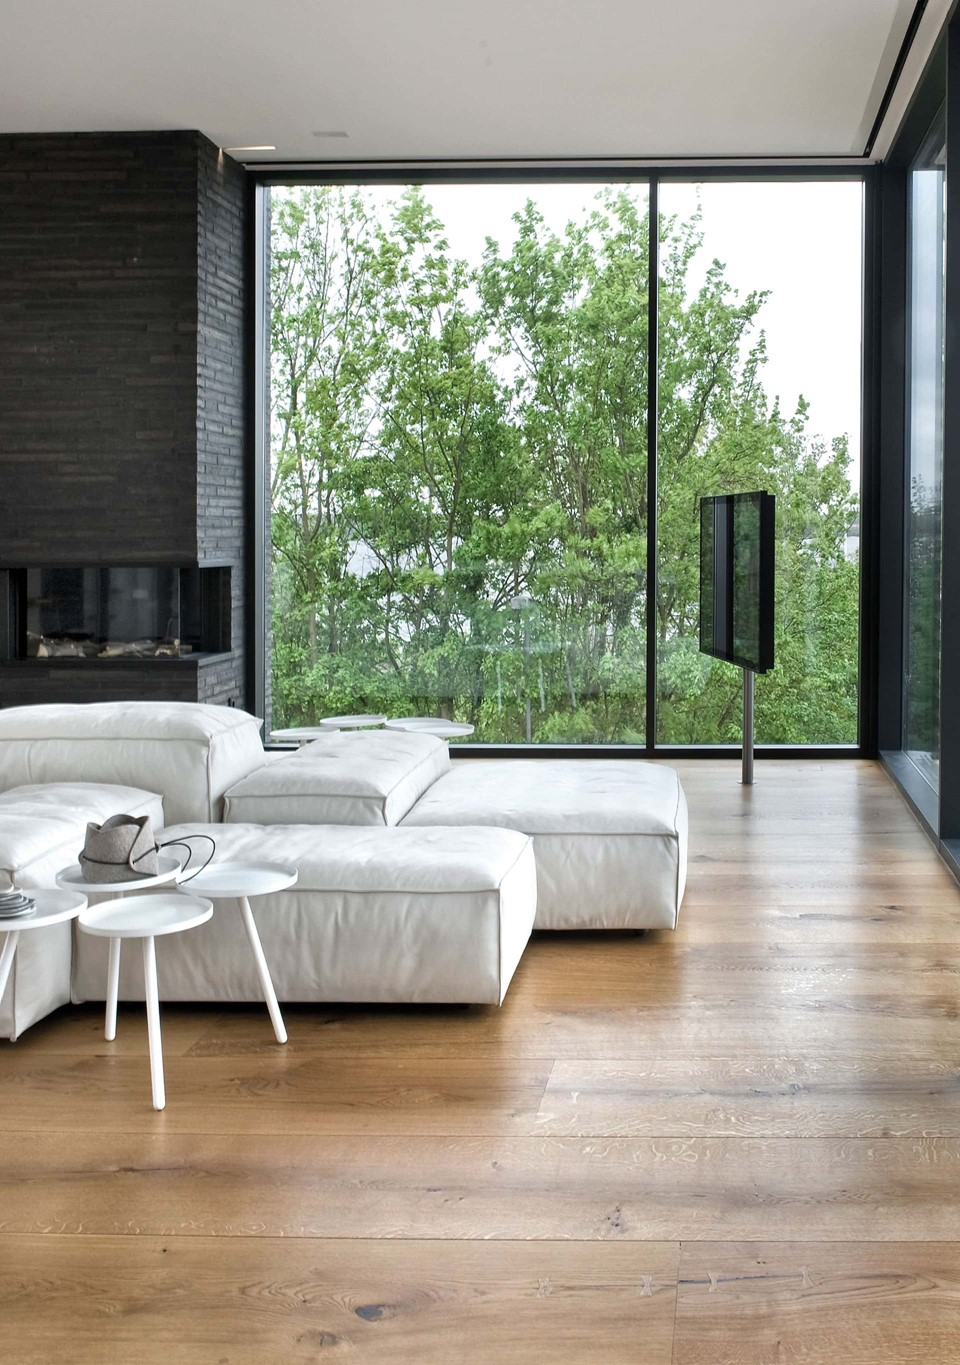 oak-hardwood-floors-heartoak_natural-oil_strib-residence_living-room2_dinesen.jpg